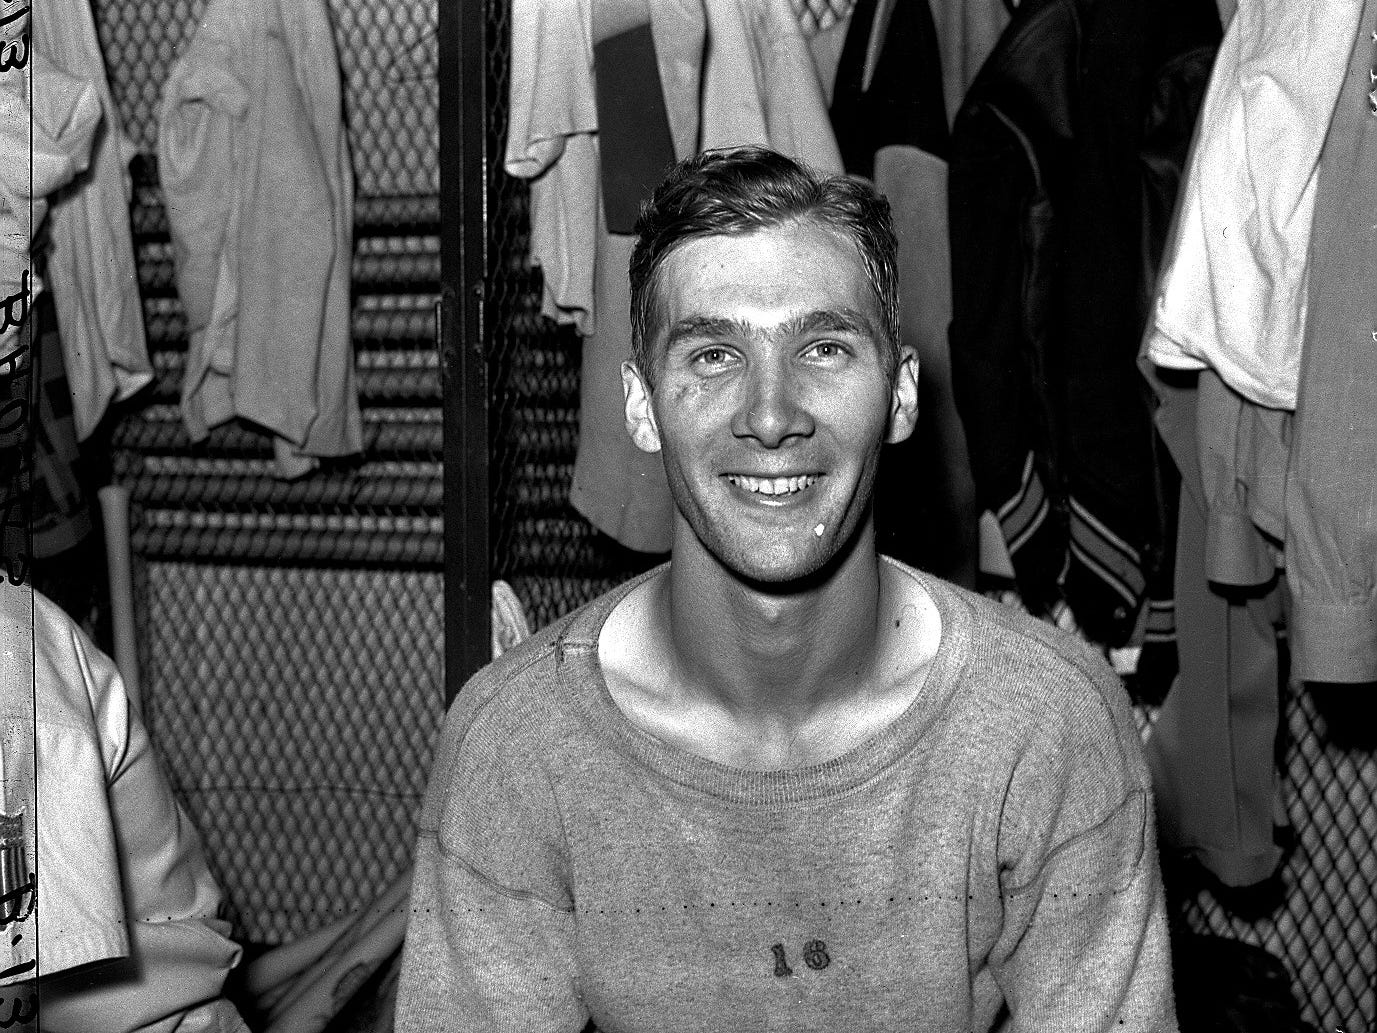 Detroit Tigers pitcher Hal Newhouser sits in the locker room in 1944, a season in which he went 29-9 and was the American League MVP. The Detroit native would spend 17 seasons in the major leagues. He was inducted into the Baseball Hall of Fame in 1992.